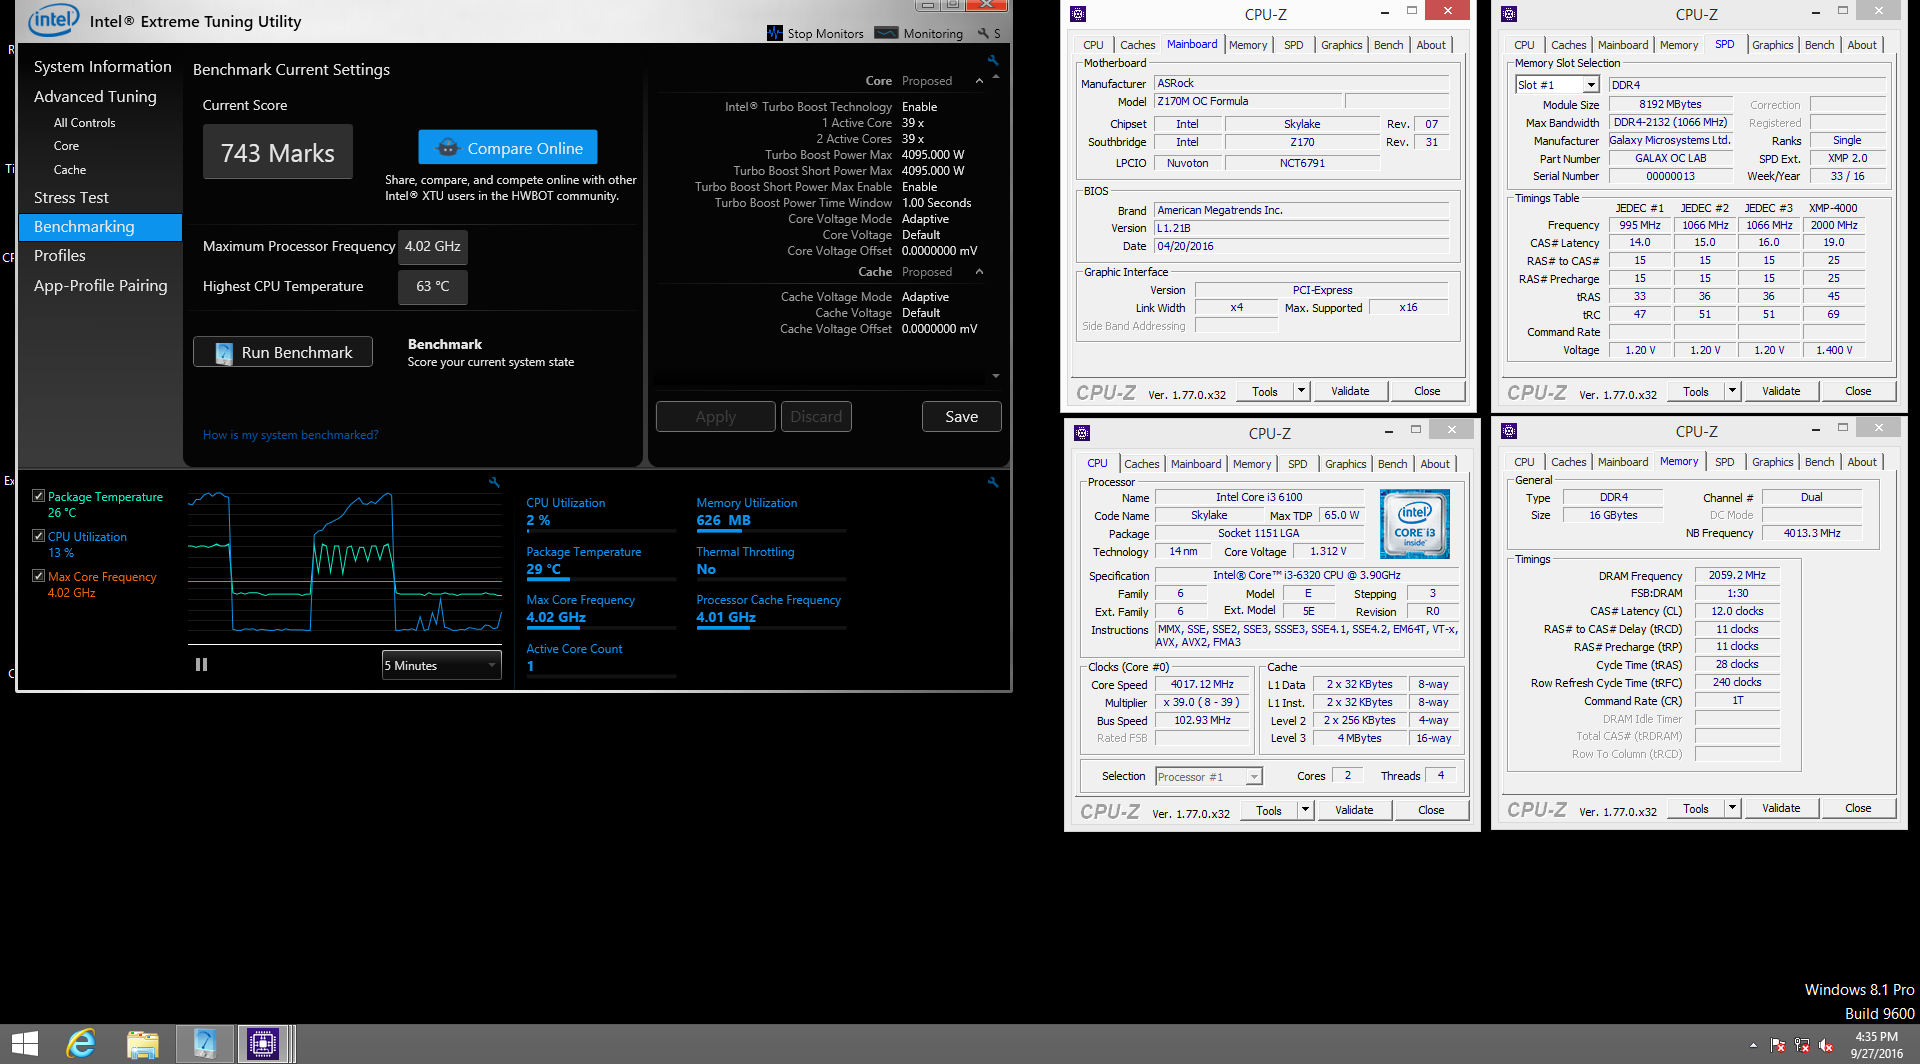 Elkim's 743 marks XTU run with Core i3 6320 @ 4020MHz